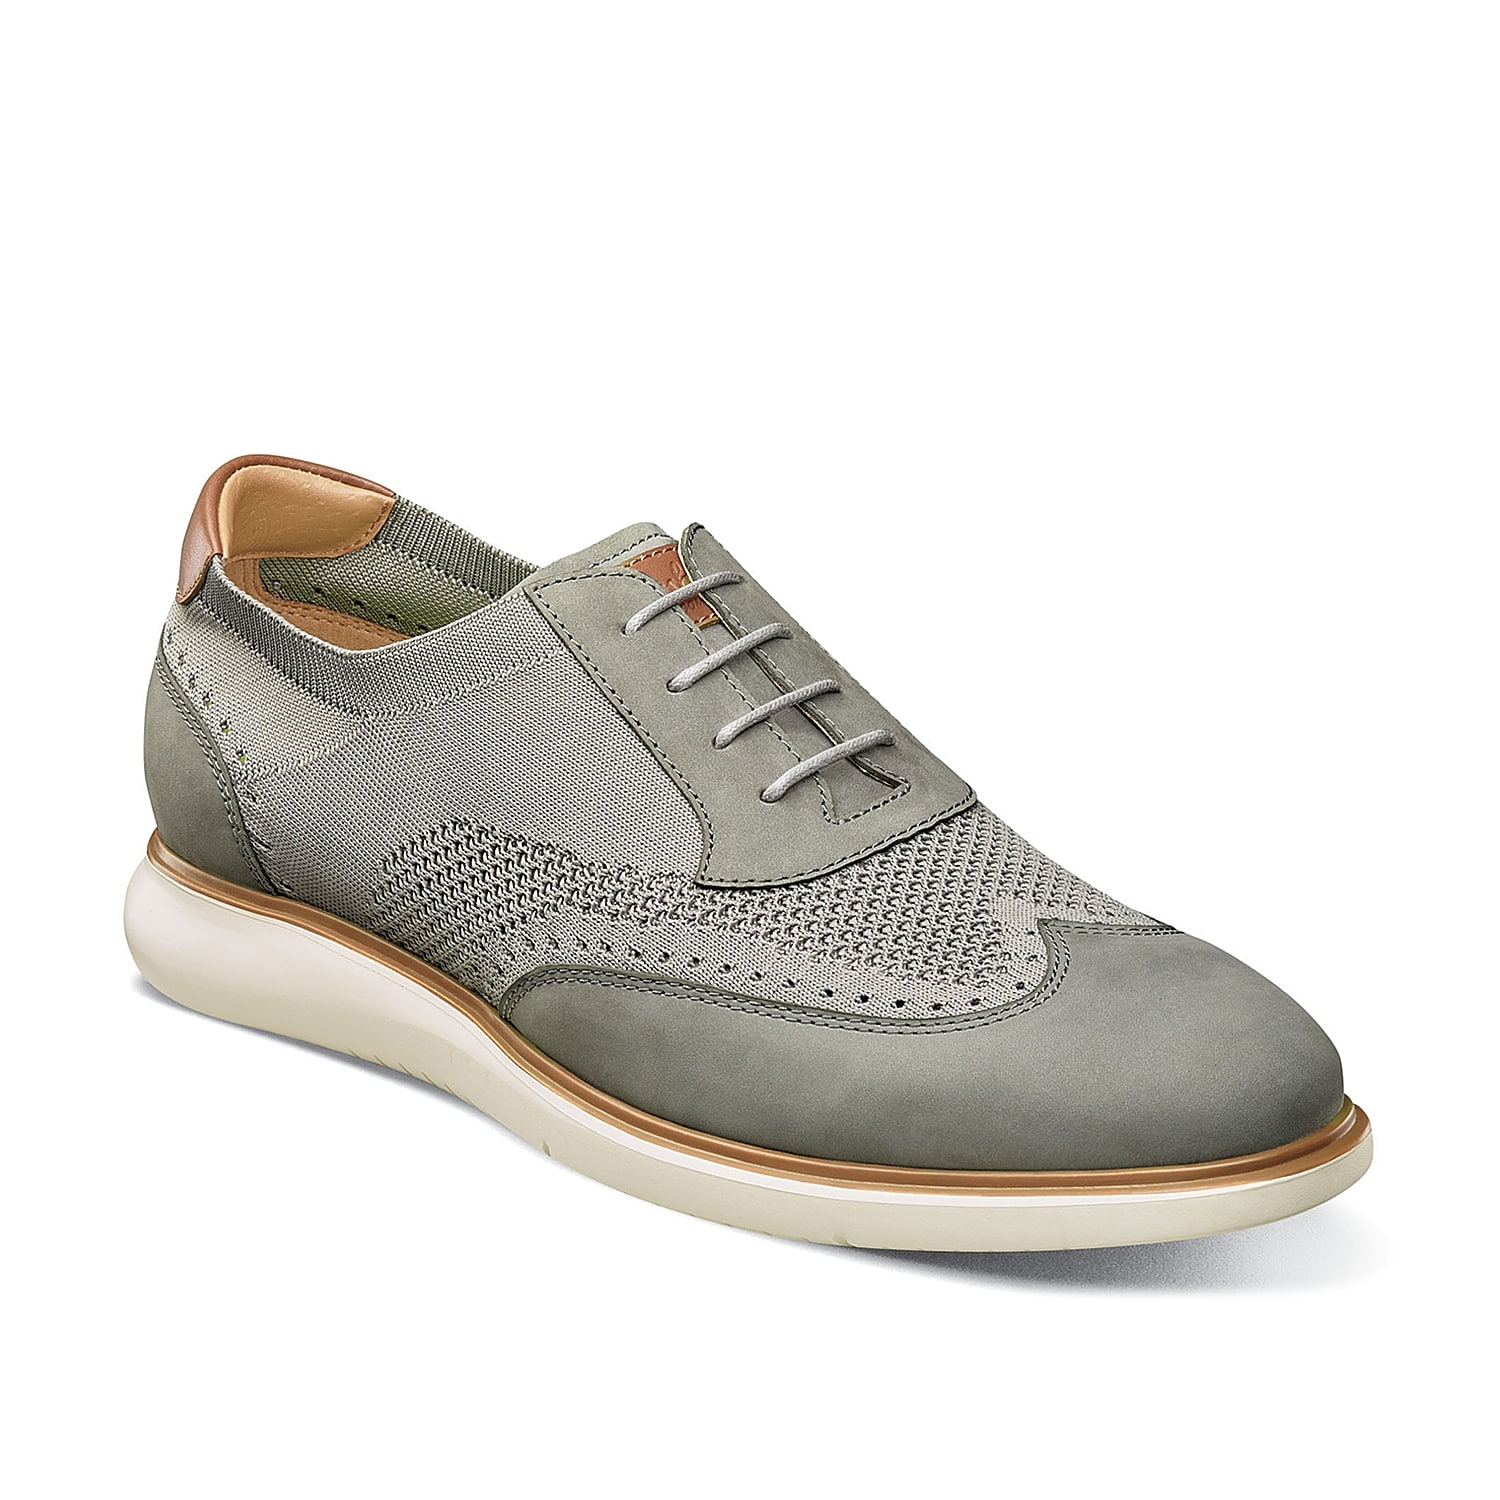 Go between casual and refined with the Fuel Knit oxfords from Florsheim. These lace-ups feature a mixed-material design and wingtip detailing for classic flair.